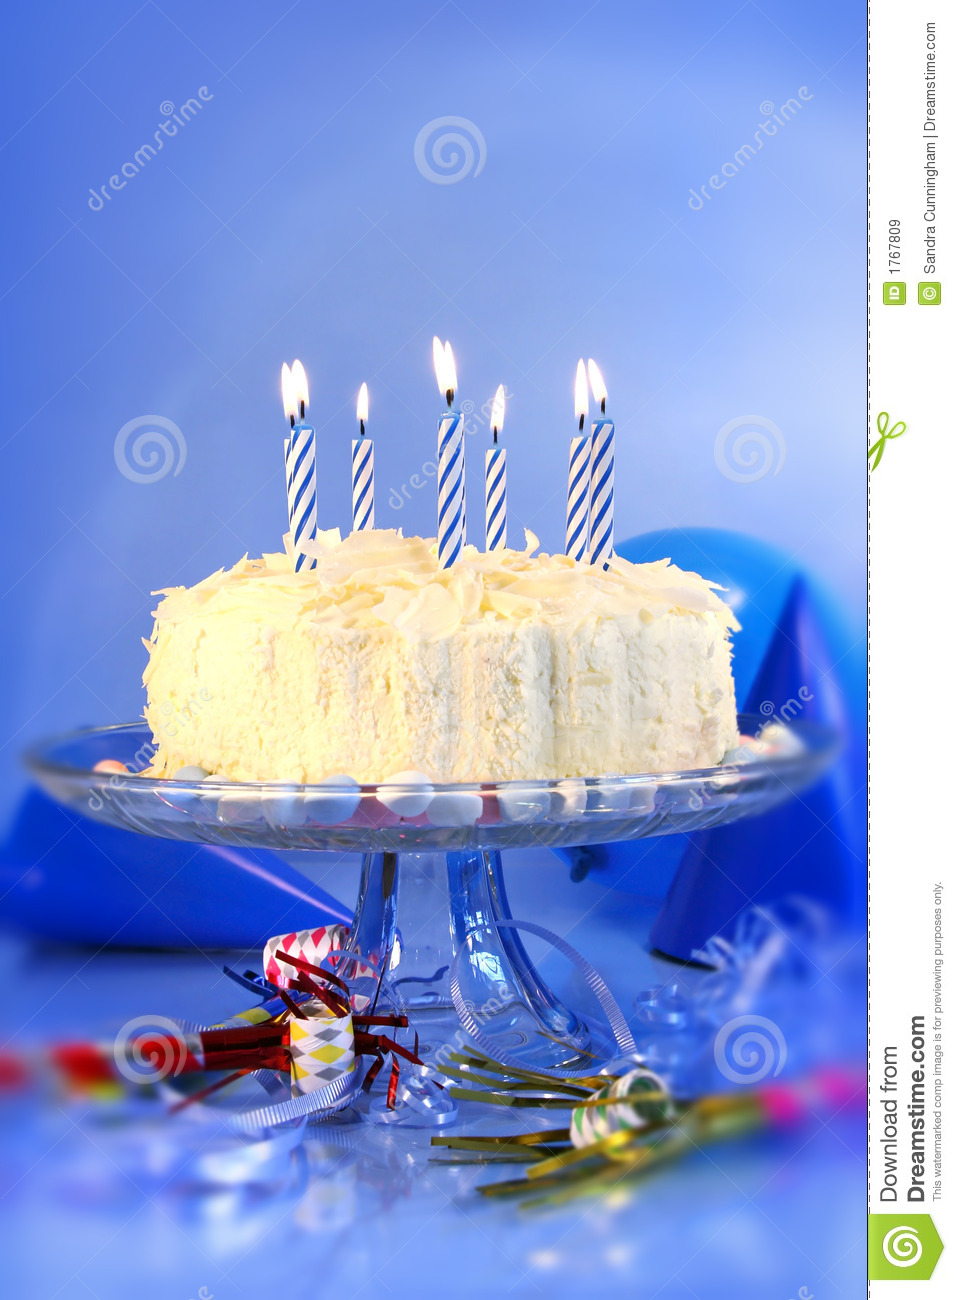 Blue Birthday Celebrations Royalty Free Stock Images